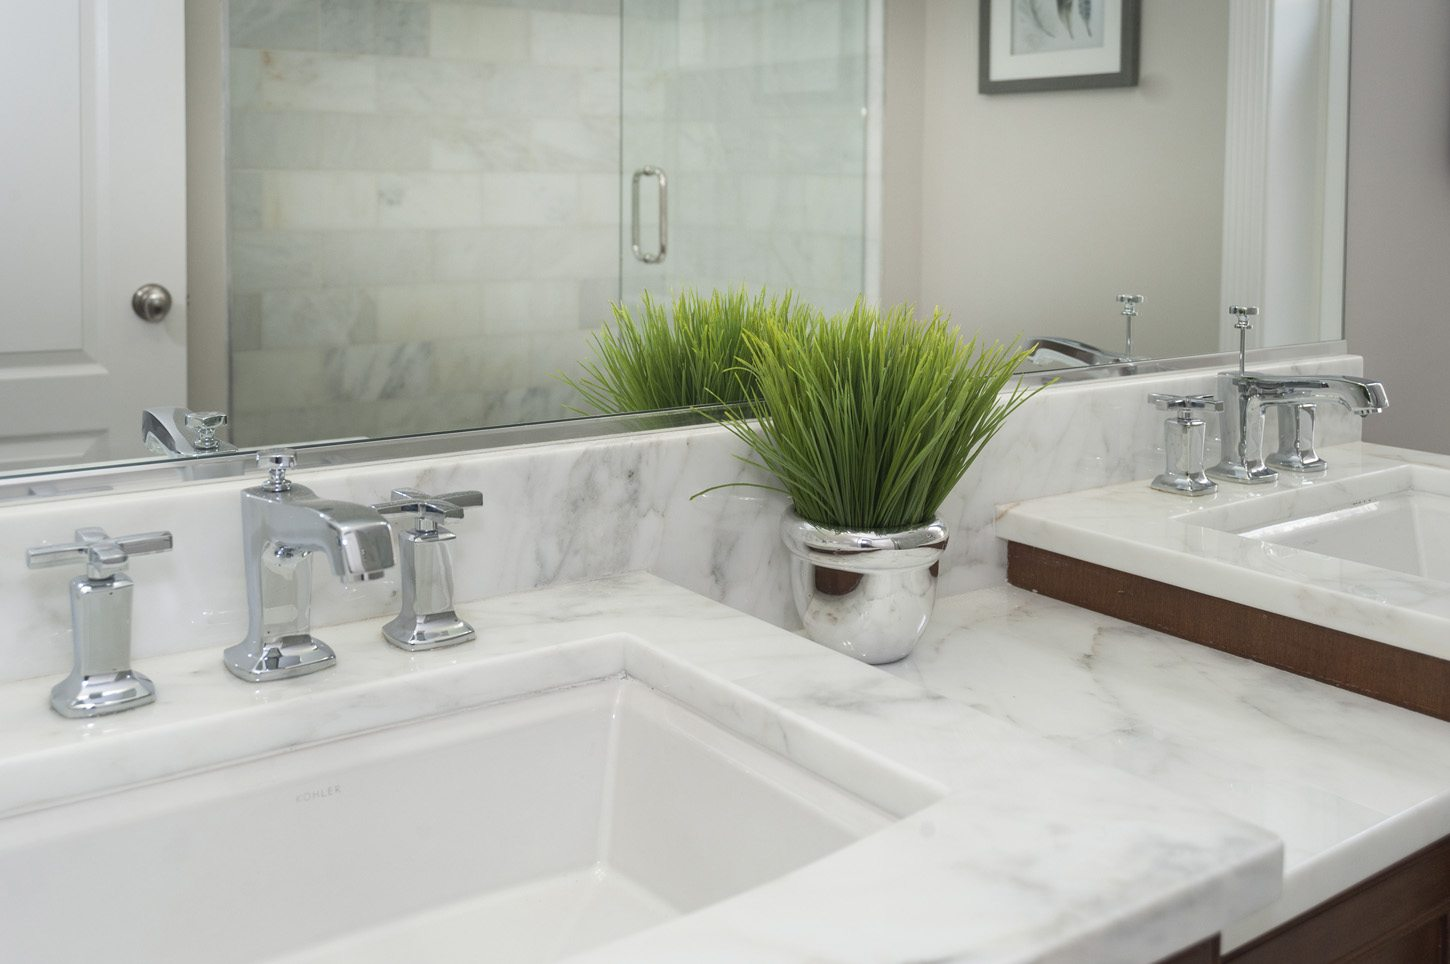 Best Bathroom Countertops in Maryland at the Lowest Prices ...